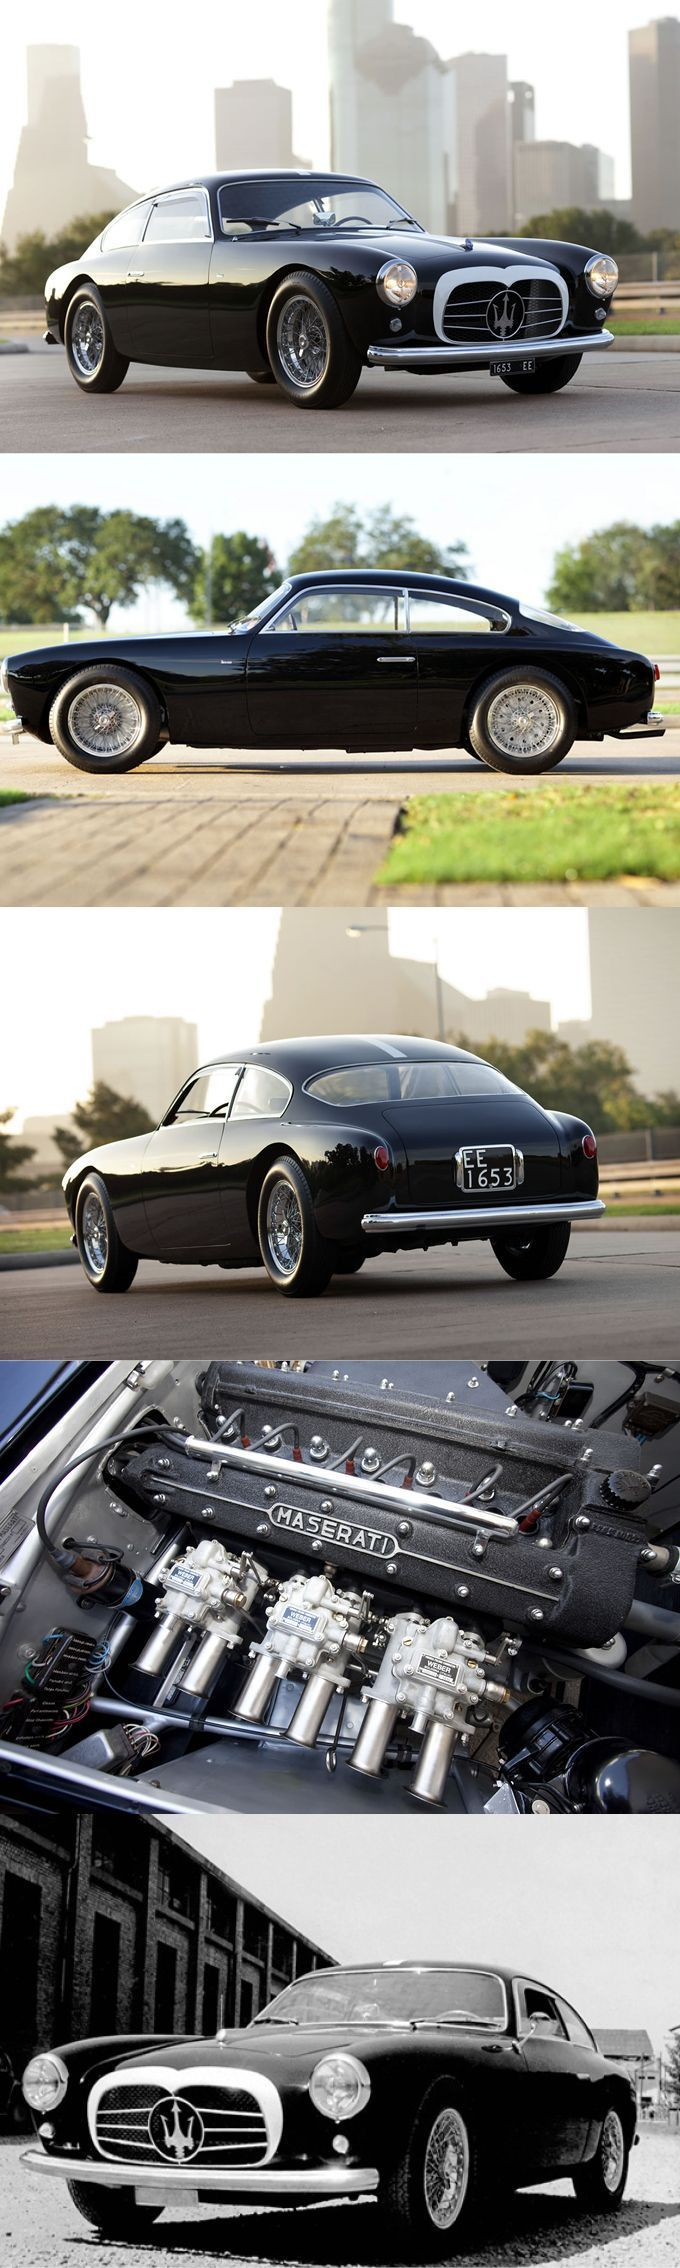 This and other luxury products can be found on the website of Lusea.de 1955 Maserati A6G / 54 / s / n 2105 1 of 21 produced / 150hp 2.0l L6 / black wh …